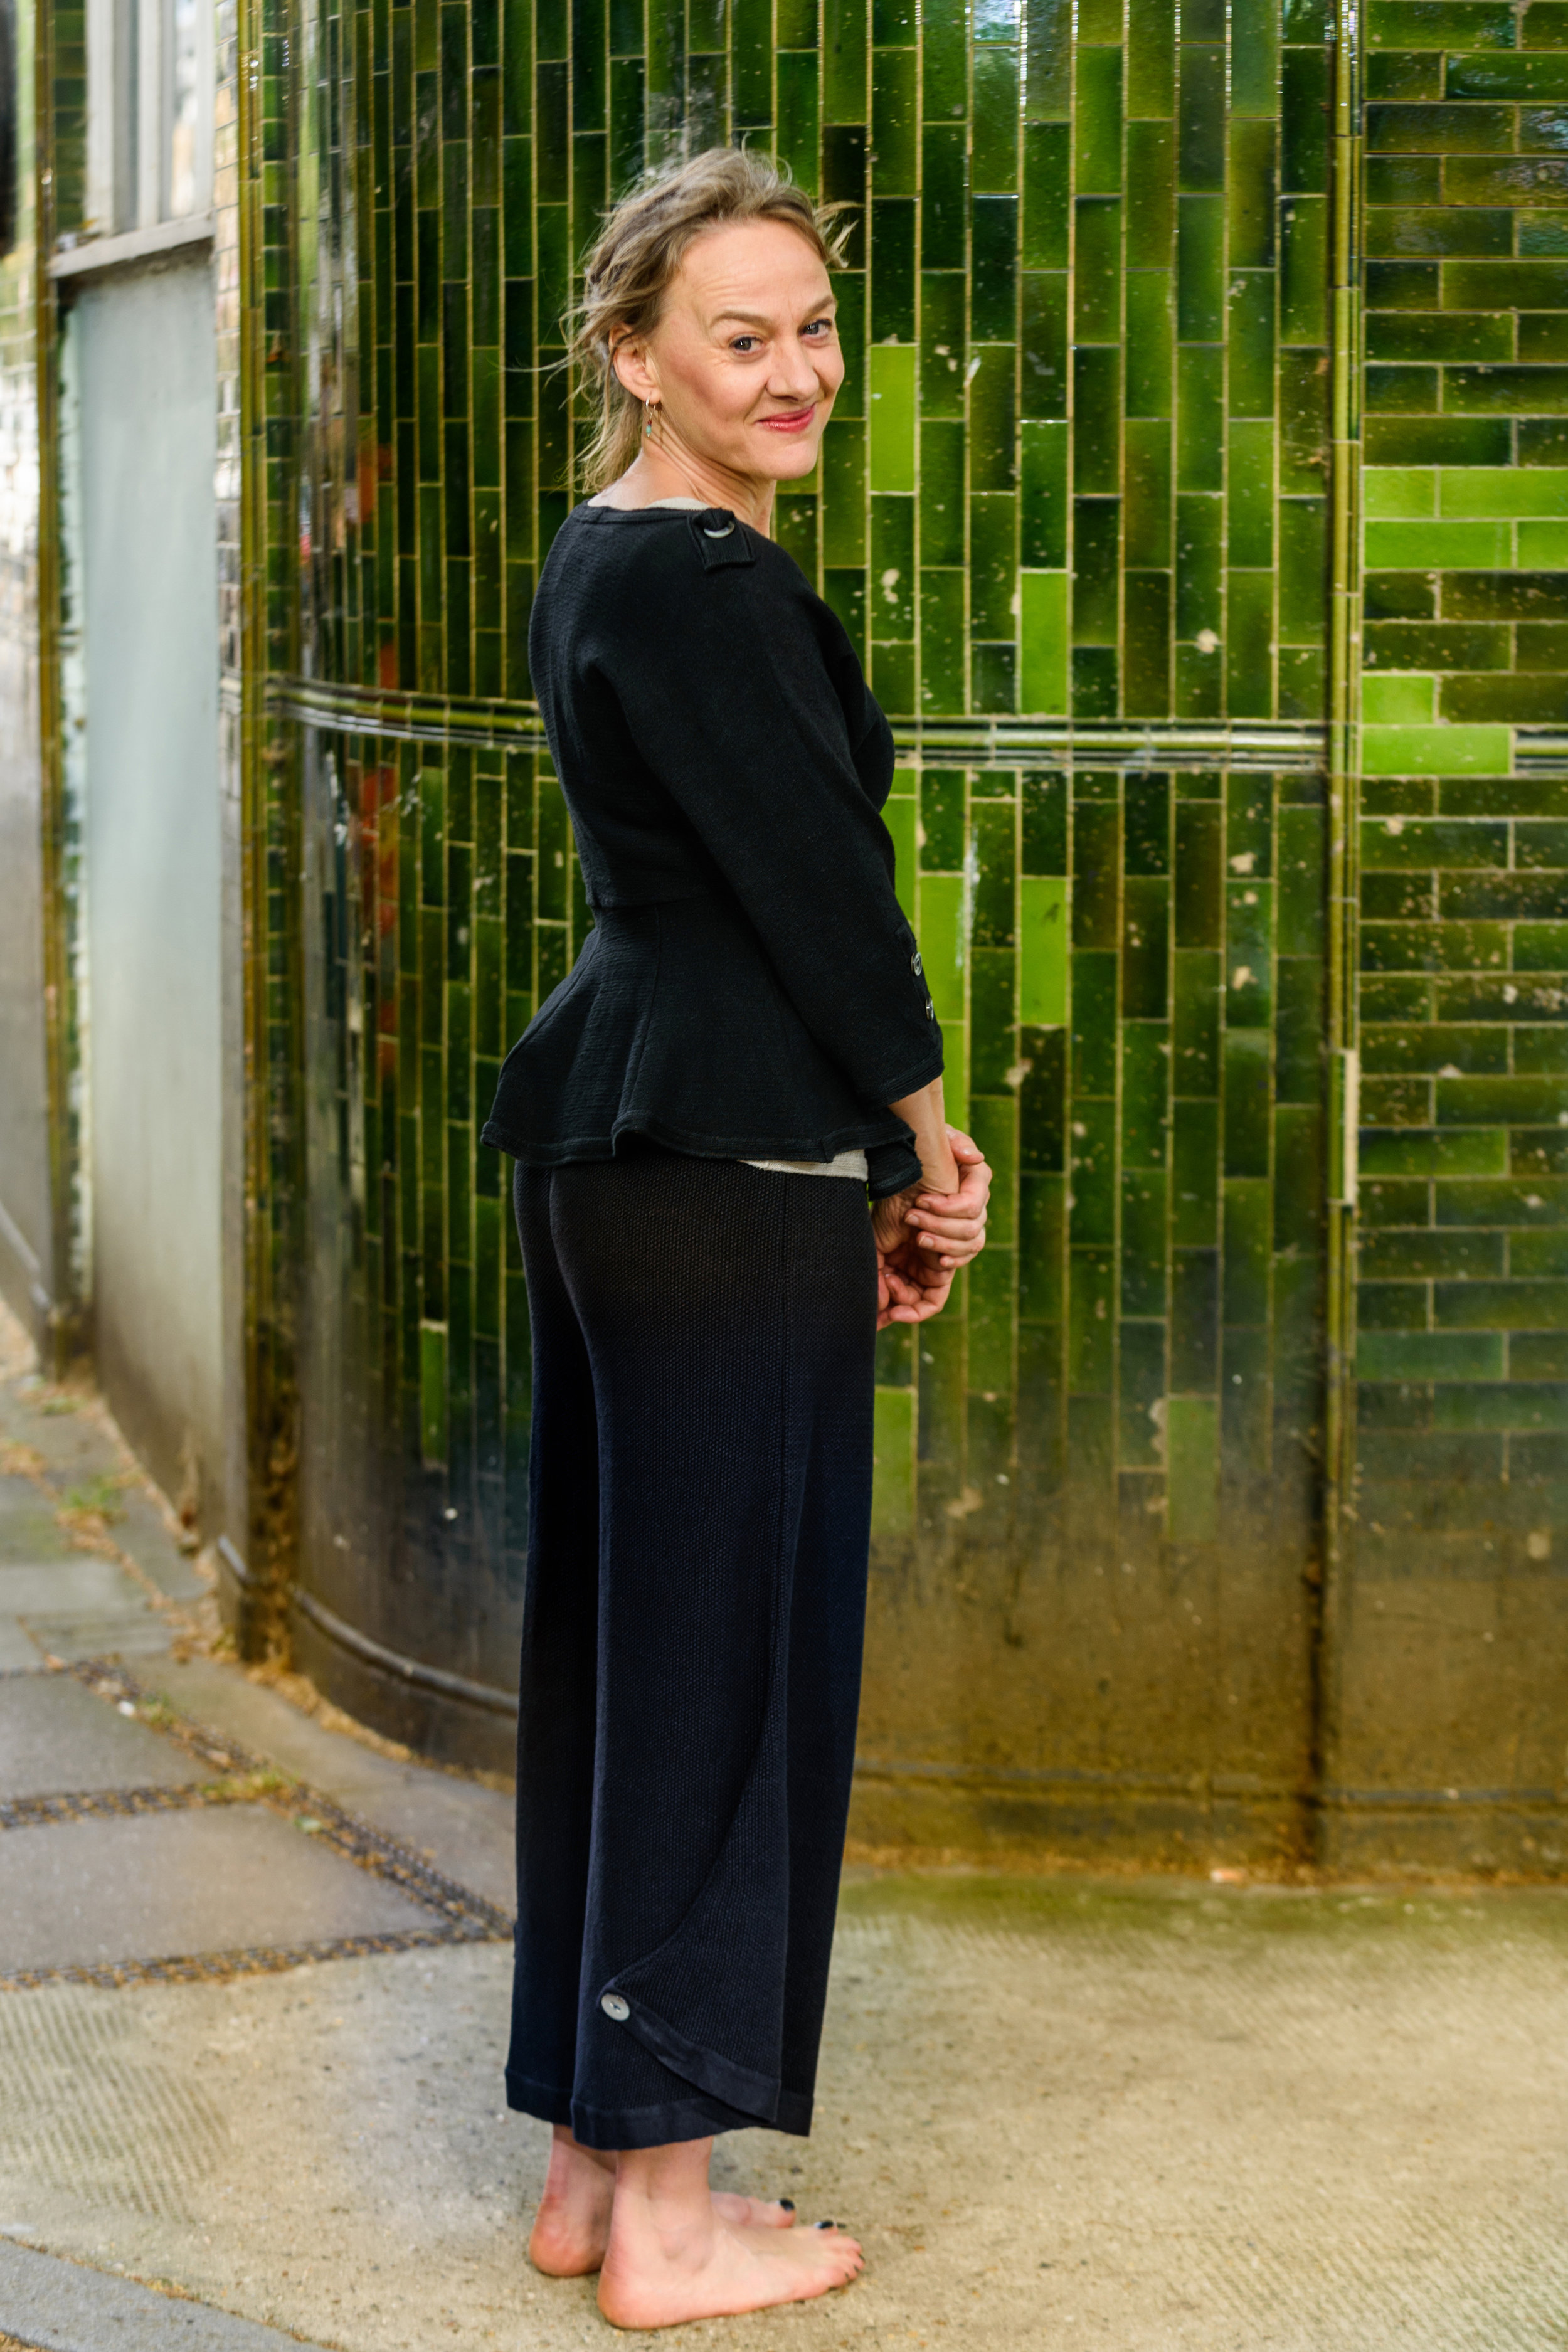 Niamh Cusack, Actress - Niamh immediately fell in love with Sophie's exceptional pieces, calling them 'beautiful clothes that make me feel beautiful'. Wearing an ensemble at a recent opening night, she noted 'I felt a million dollars, and on top of that I was able to cycle home… so easy, so comfortable'.